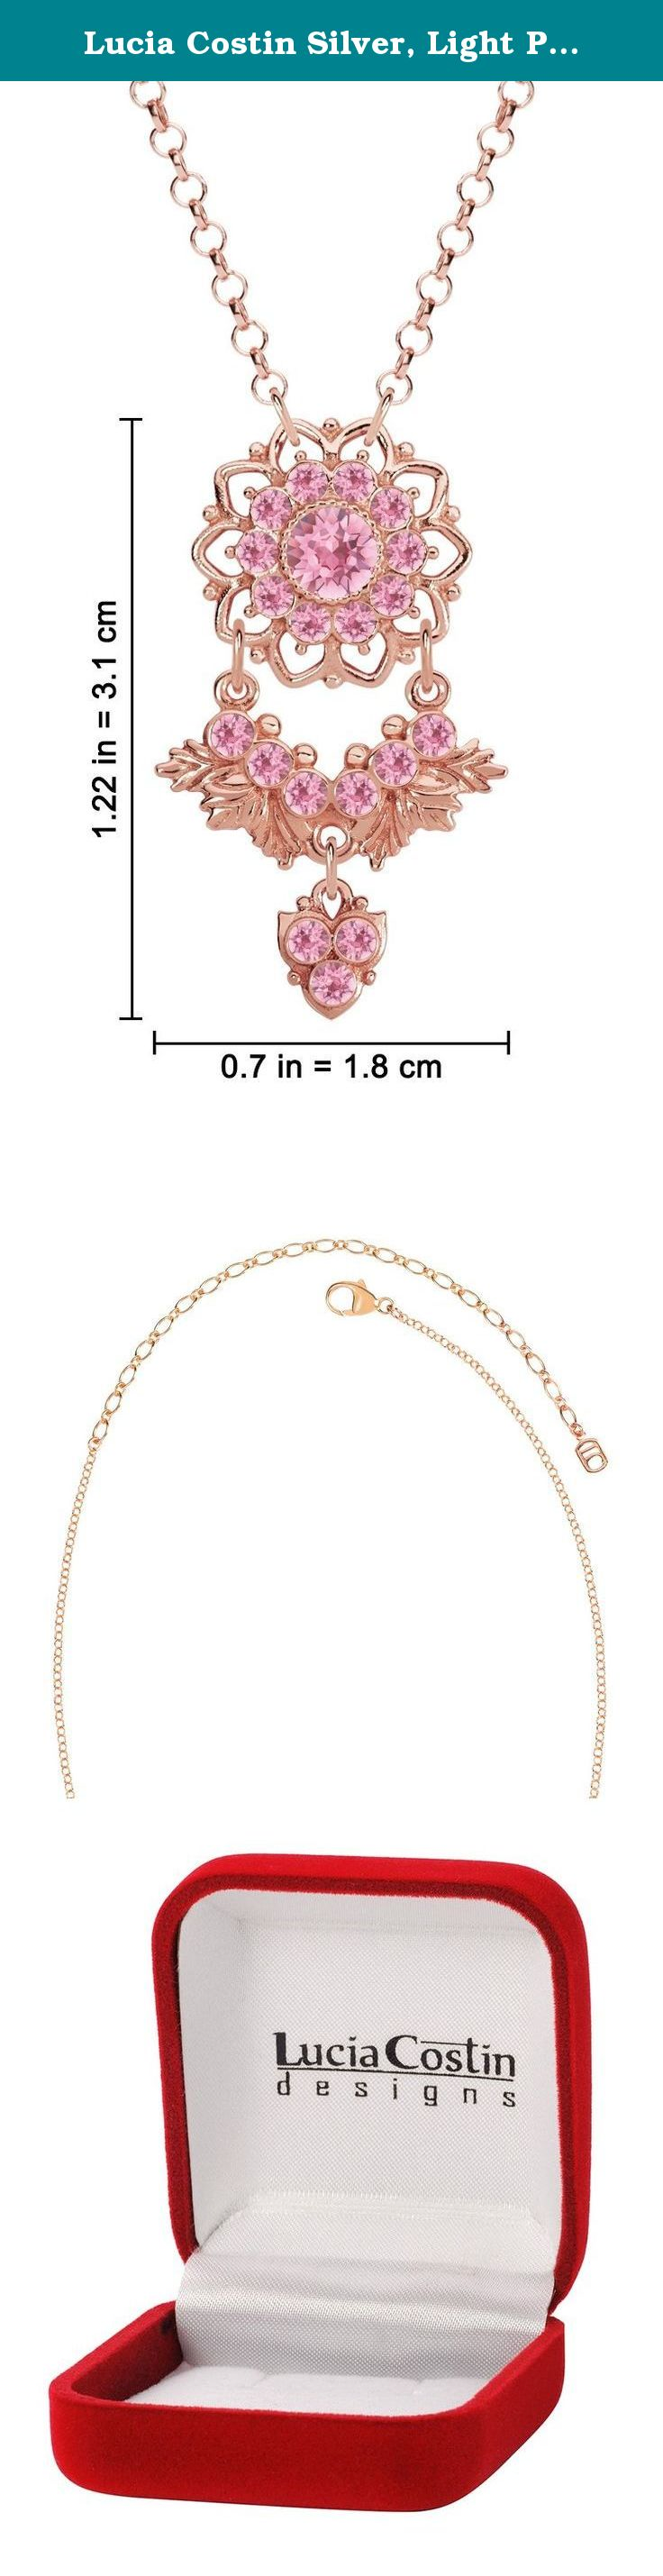 Lucia Costin Silver, Light Pink Swarovski Crystal Pendant, Delicate Enriched. Simple elegance that's always stunning with this flower pendant designed by Lucia Costin. Her jewelry can be mixed and matched by color and style. The designs are very unique and luxurious made with high quality materials and stones. Decorated with light rose Swarovski crystals, this expressive pendant artistically crafted in .925 sterling silver and is available with different plating types. This absolutely...